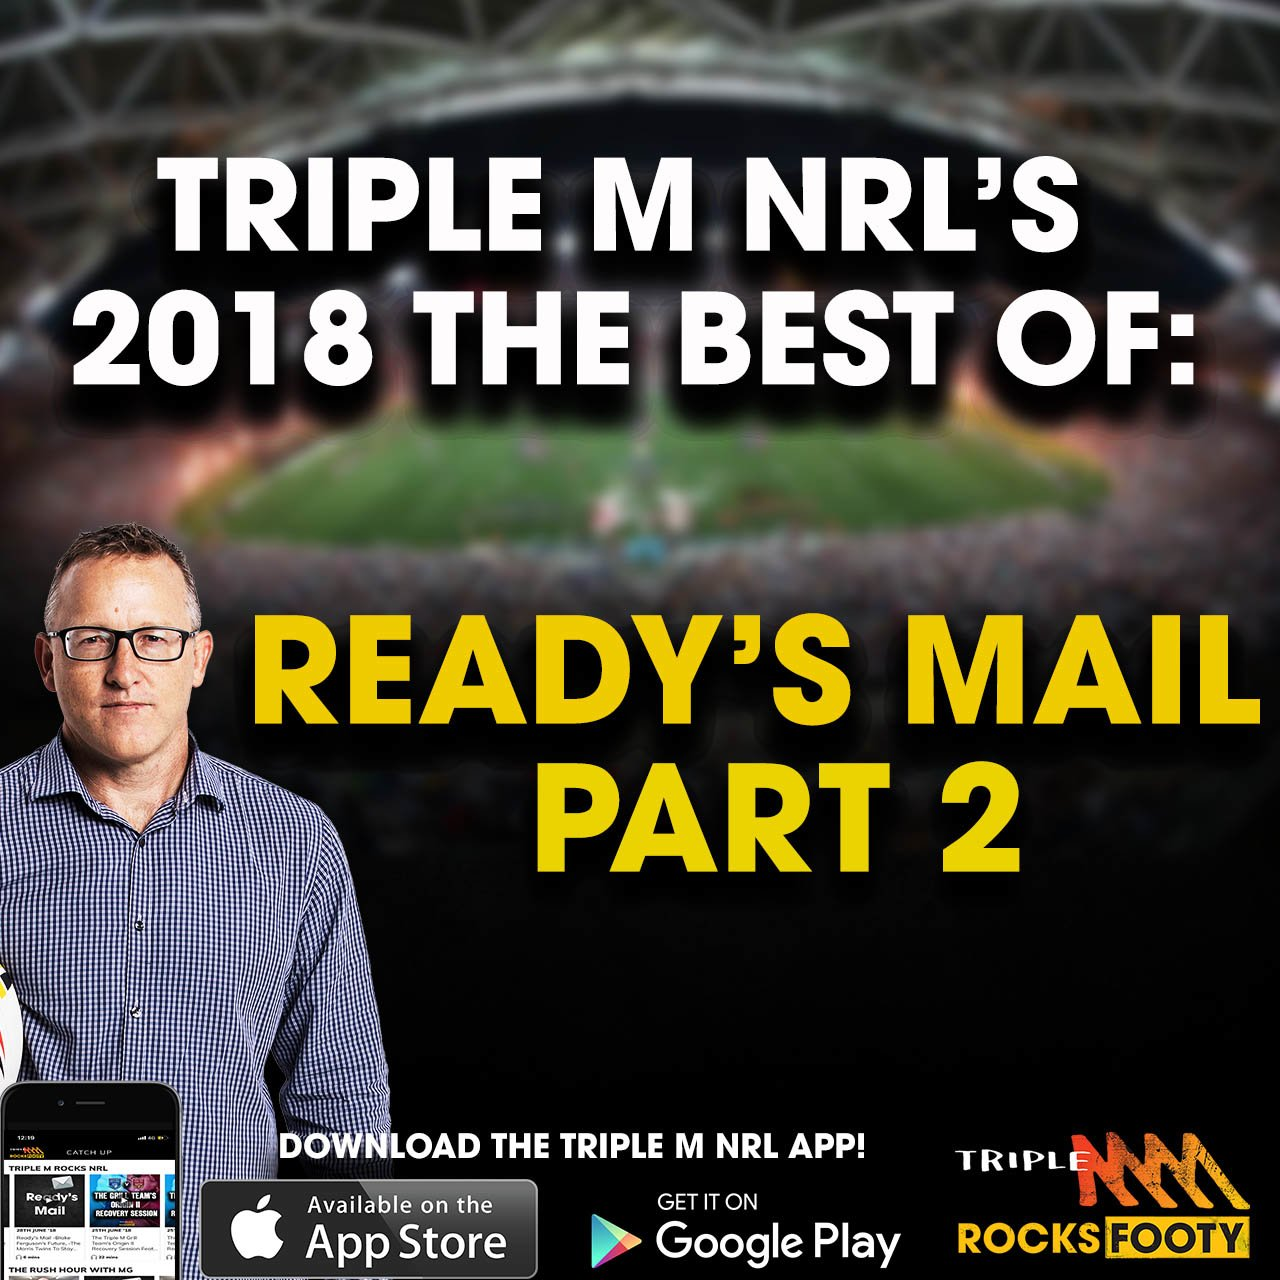 Triple M NRL's 2018 Best Of: Ready's Mail Part Two